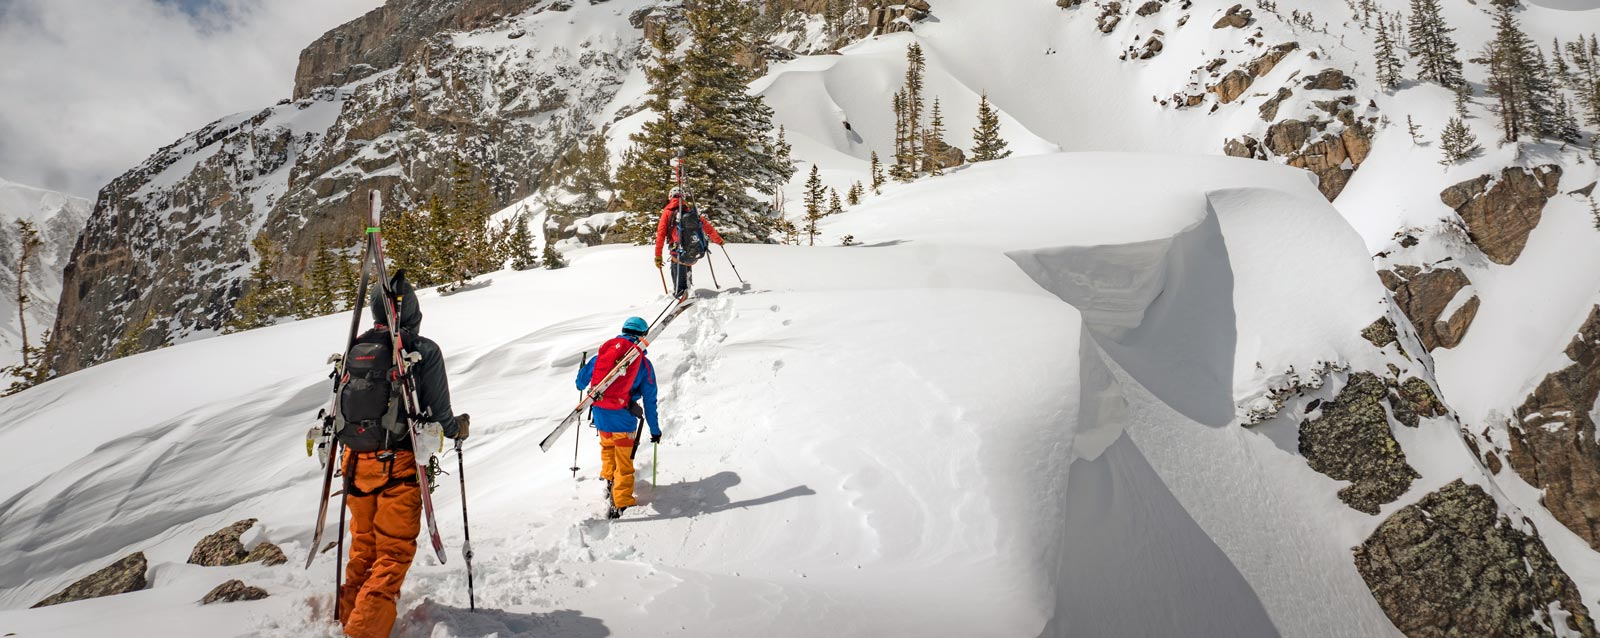 A group of backcountry skiers travel through avalanche terrain on their way to ski a line in Rocky Mountain National Park.